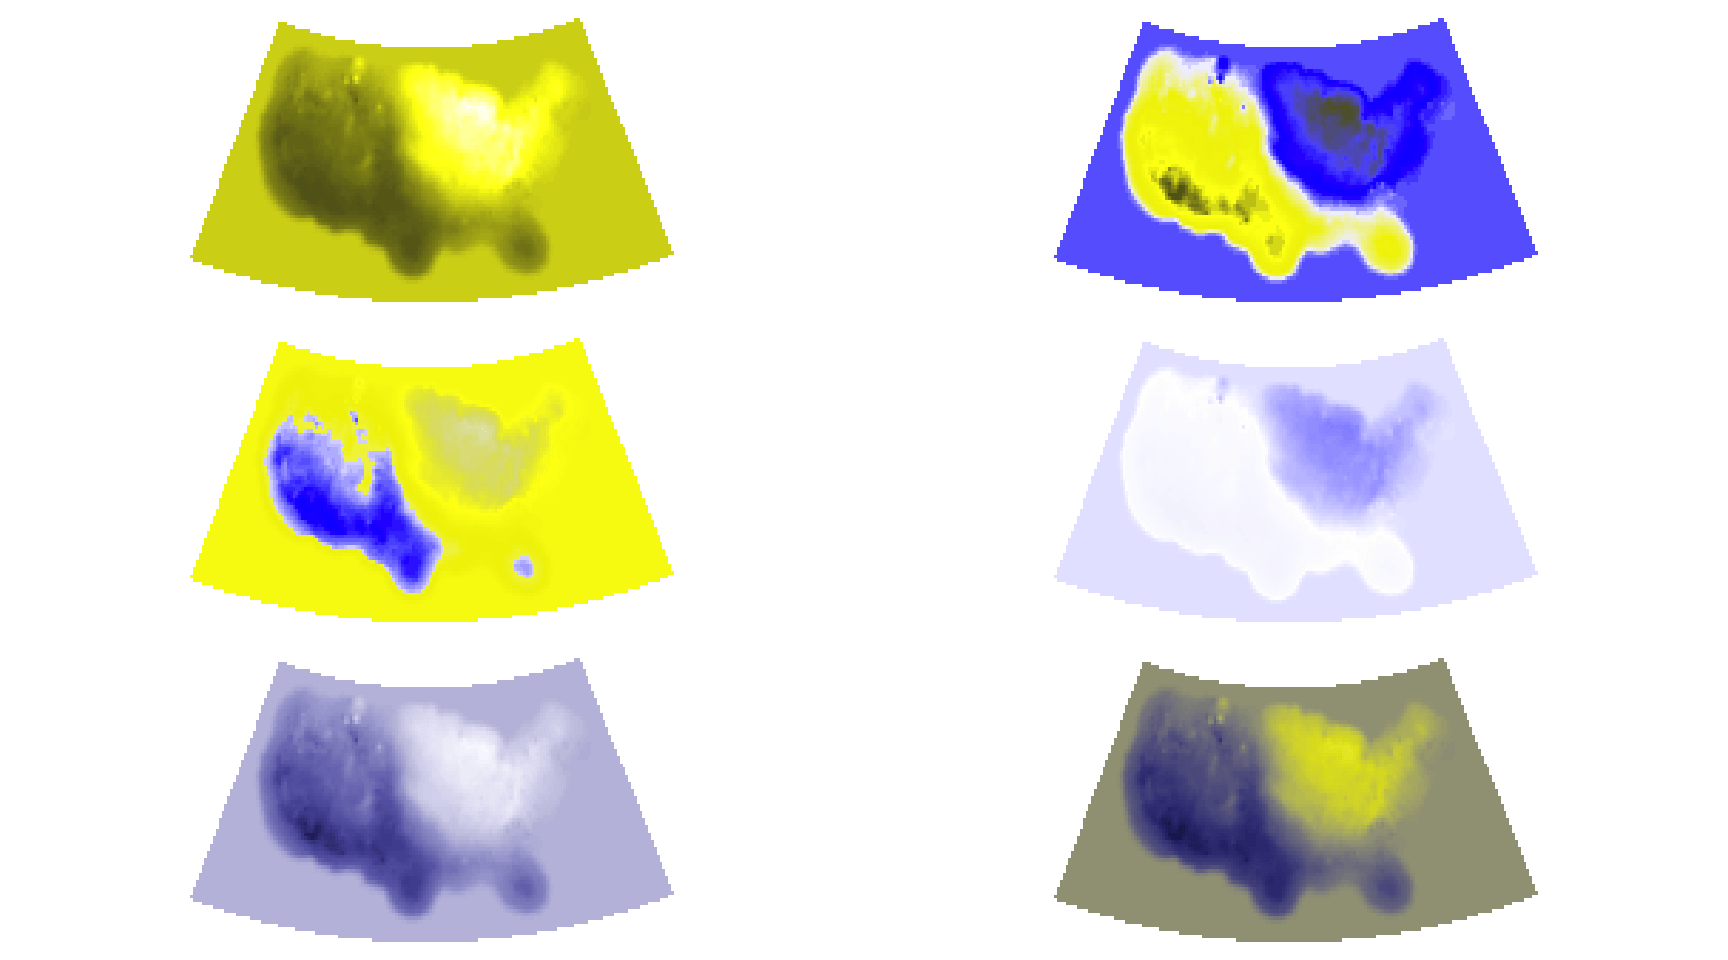 Using the new 'viridis' colormap in R (thanks to Simon